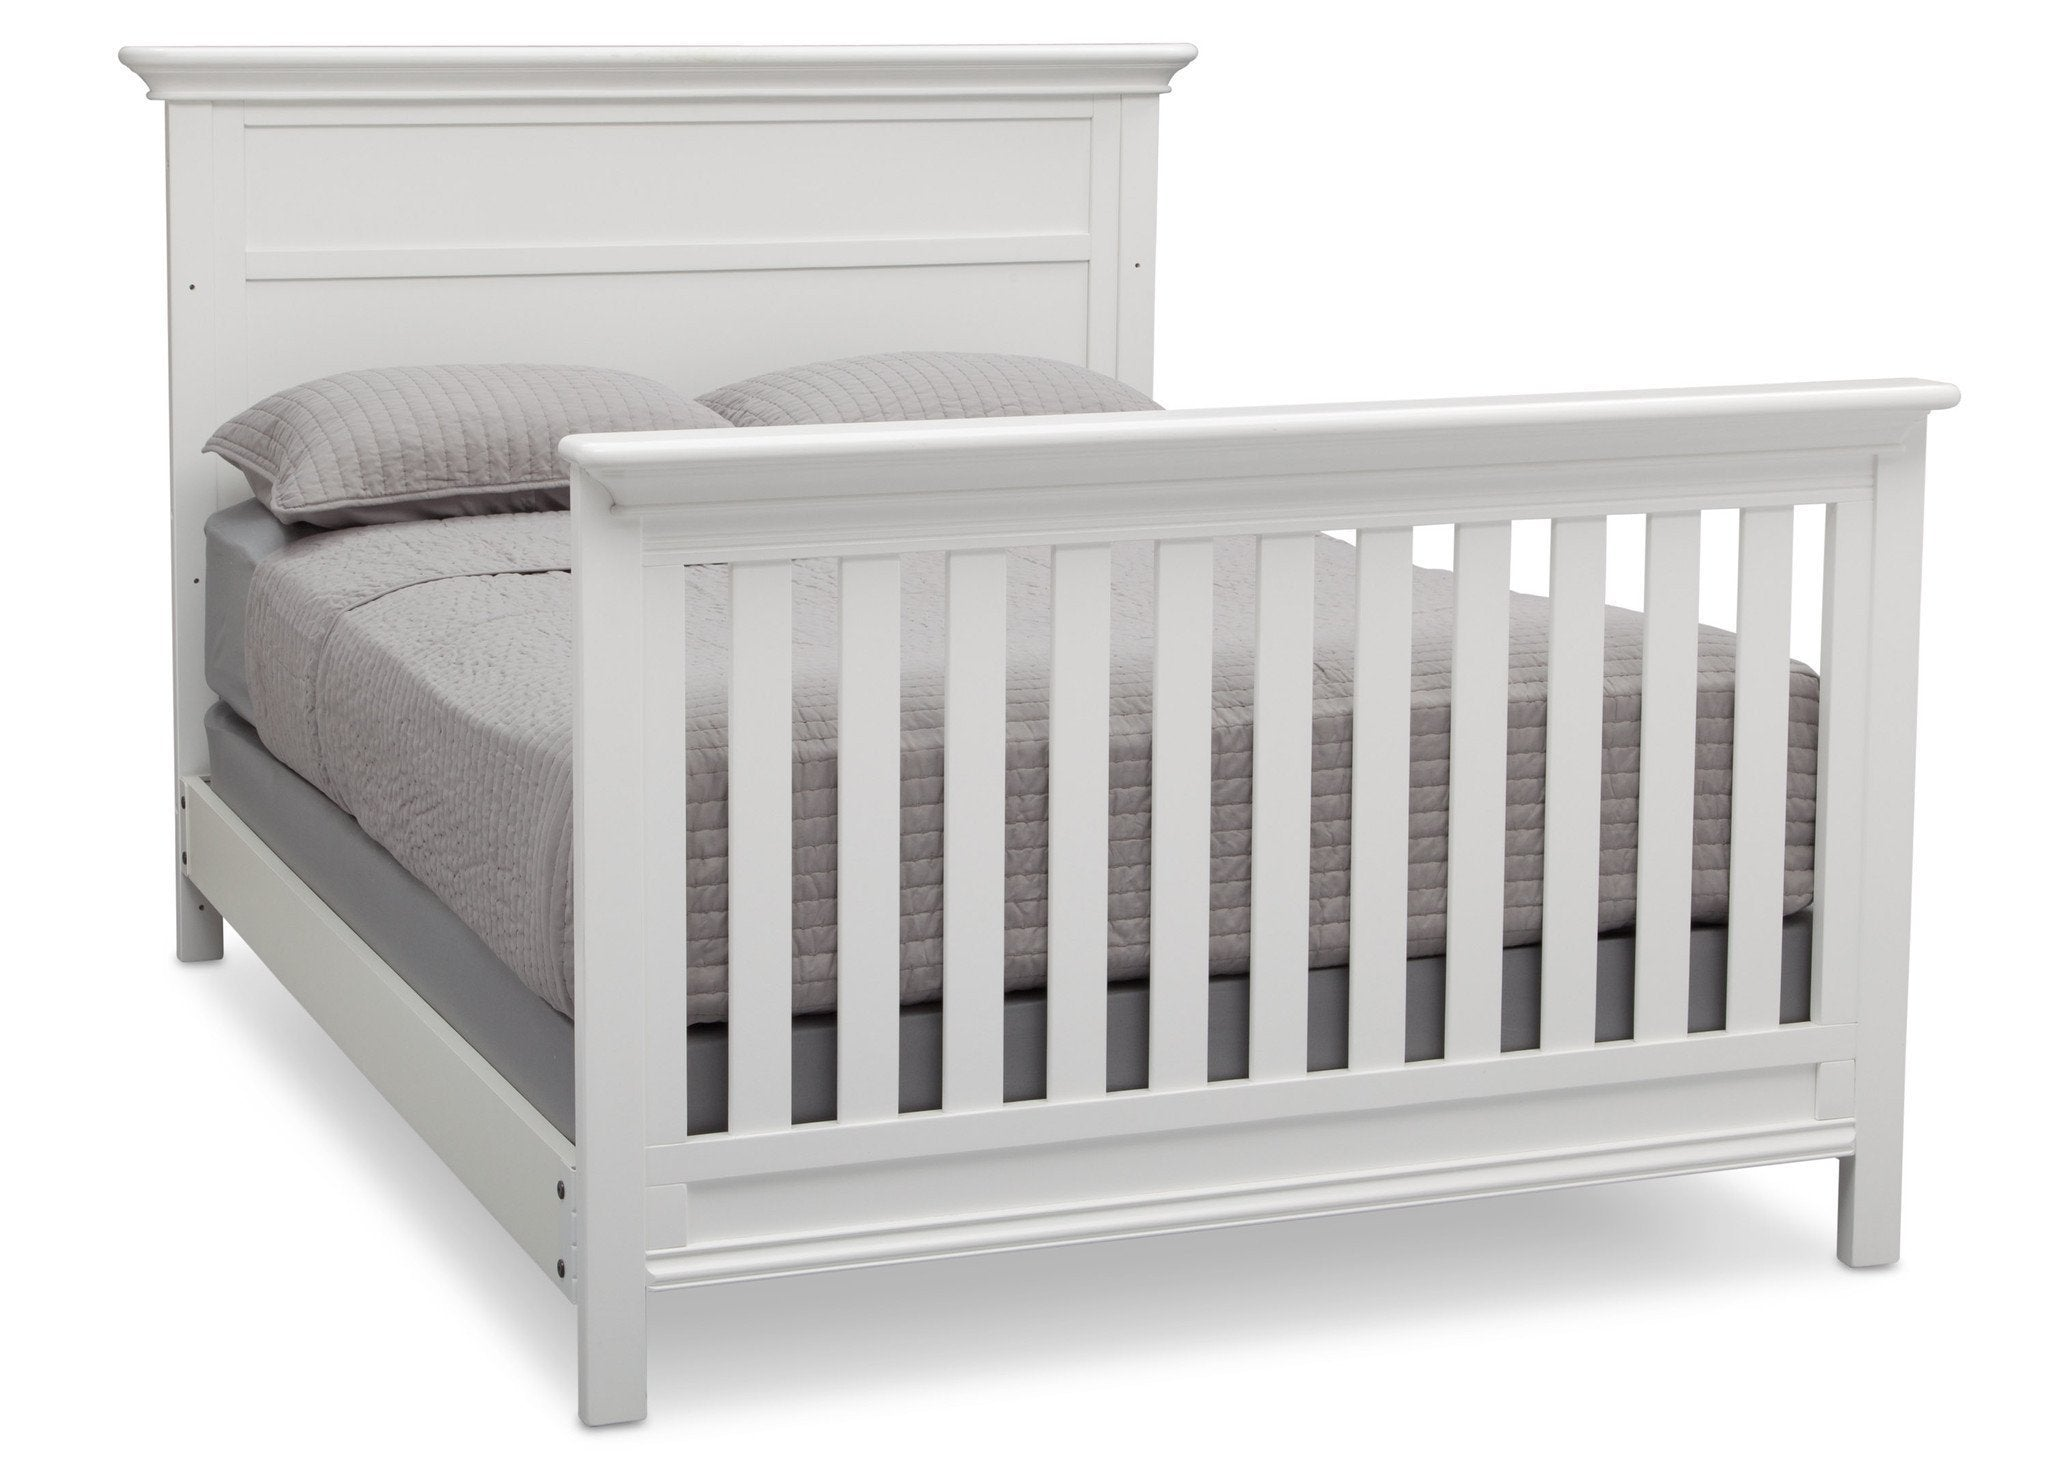 Serta Bianca White (130) Fairmount 4-in-1 Crib, Side View with Full Size Platform Bed Kit (for 4-in-1 Cribs) 700850 a7a